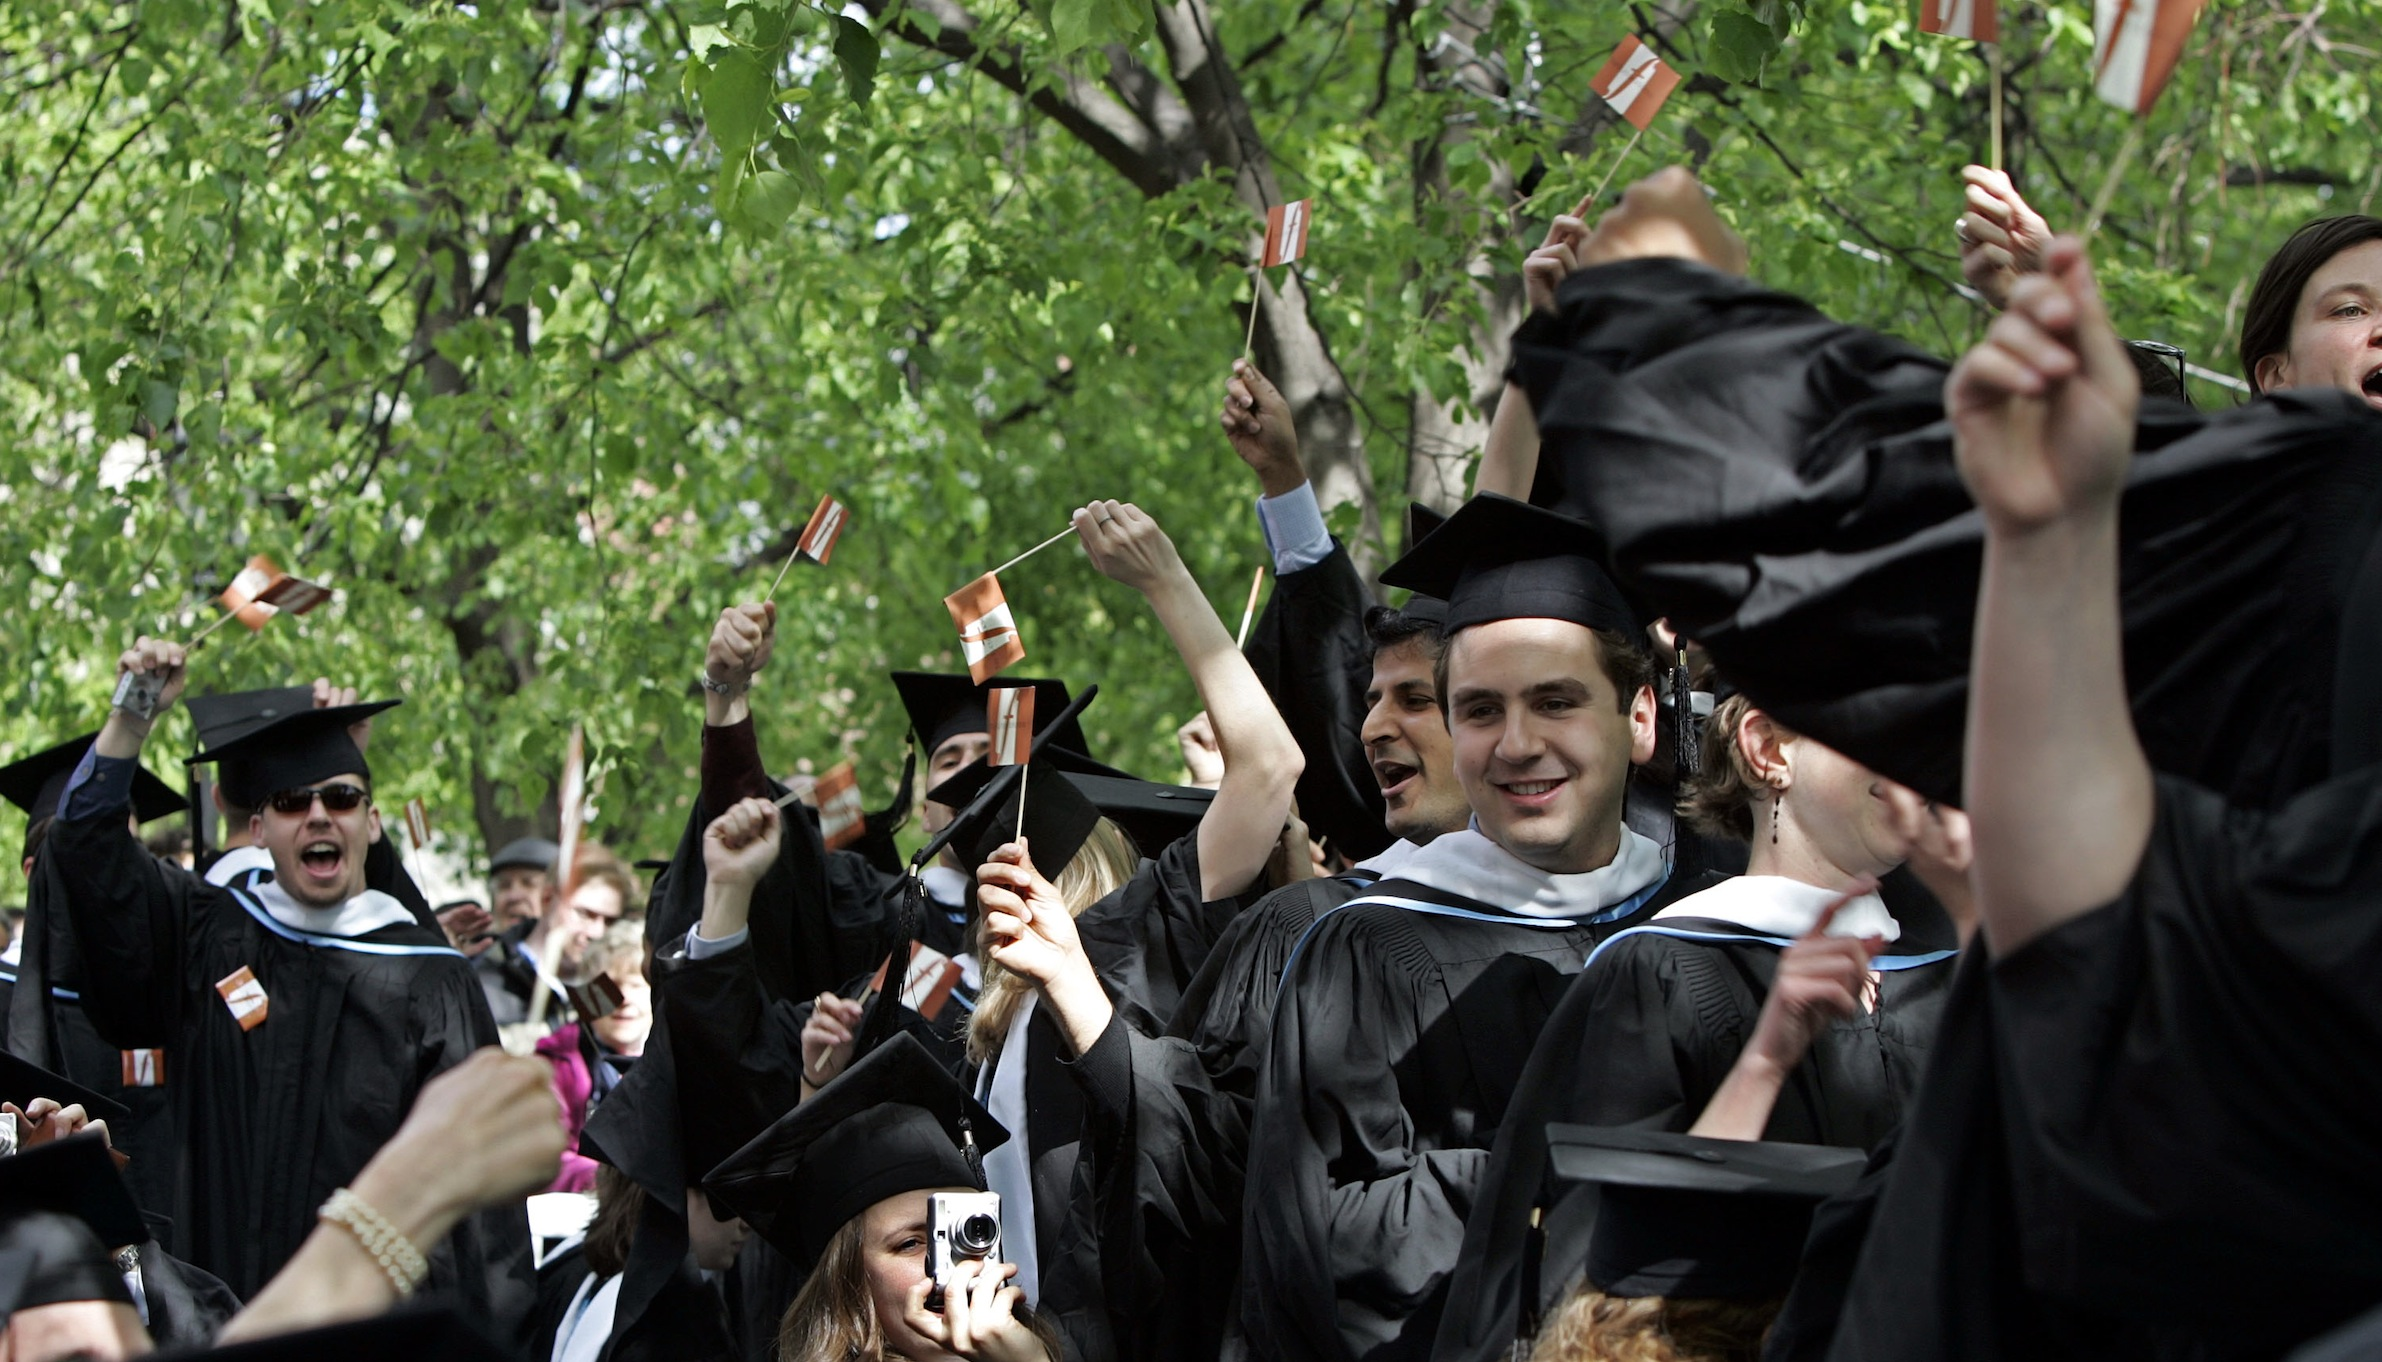 Tufts University Fletcher School of Law and Diplomacy students wave during Tufts University 150th commencement in Somerville, Mass., Sunday, May 21, 2006. (AP Photo/Chitose Suzuki)